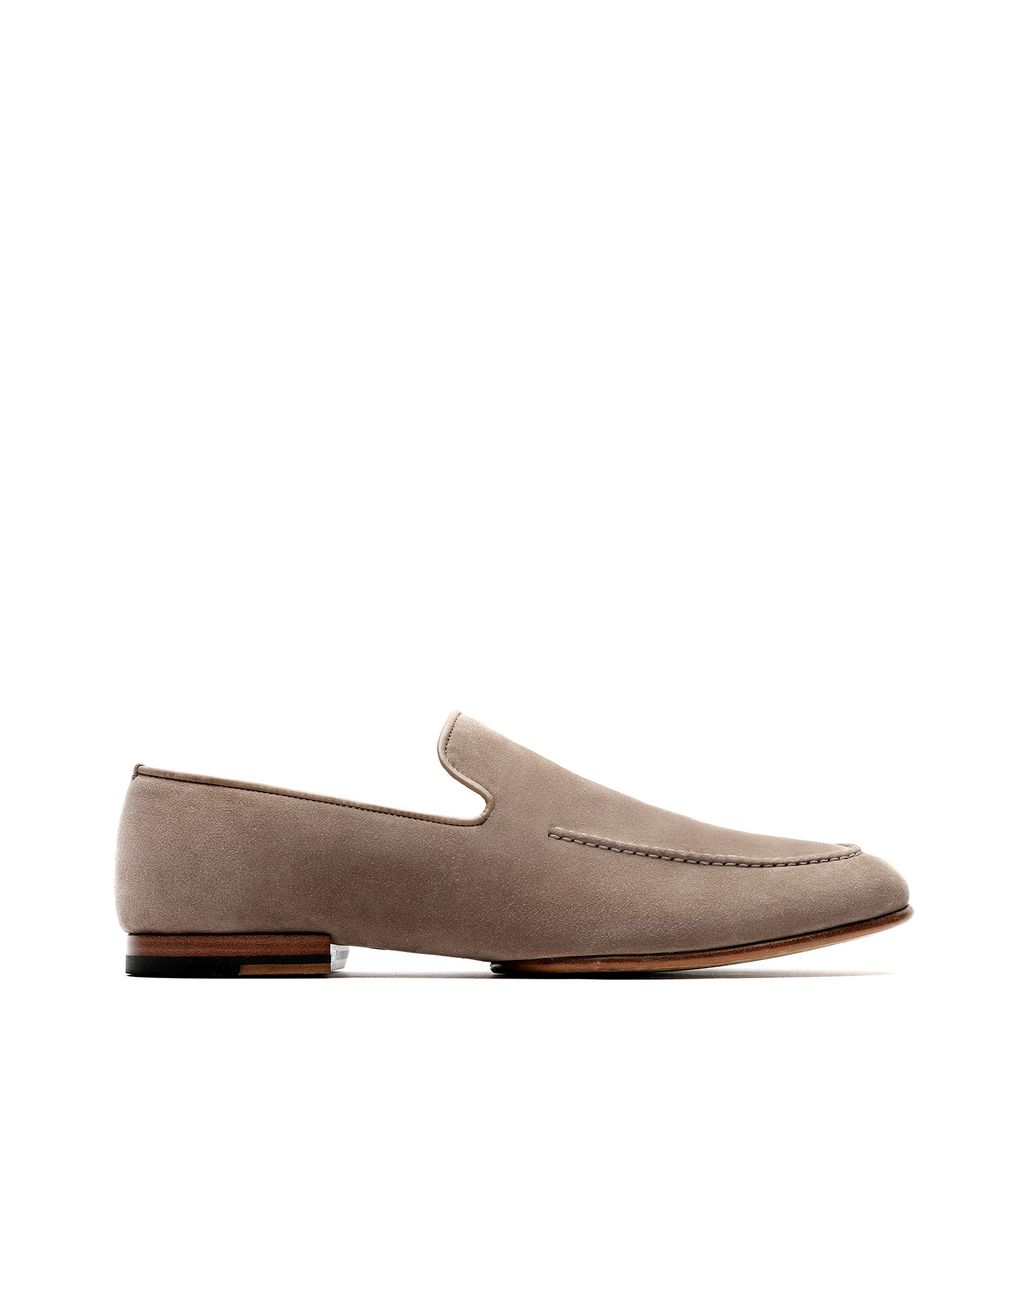 BRIONI Beige Suede Loafer Formal shoes Man f